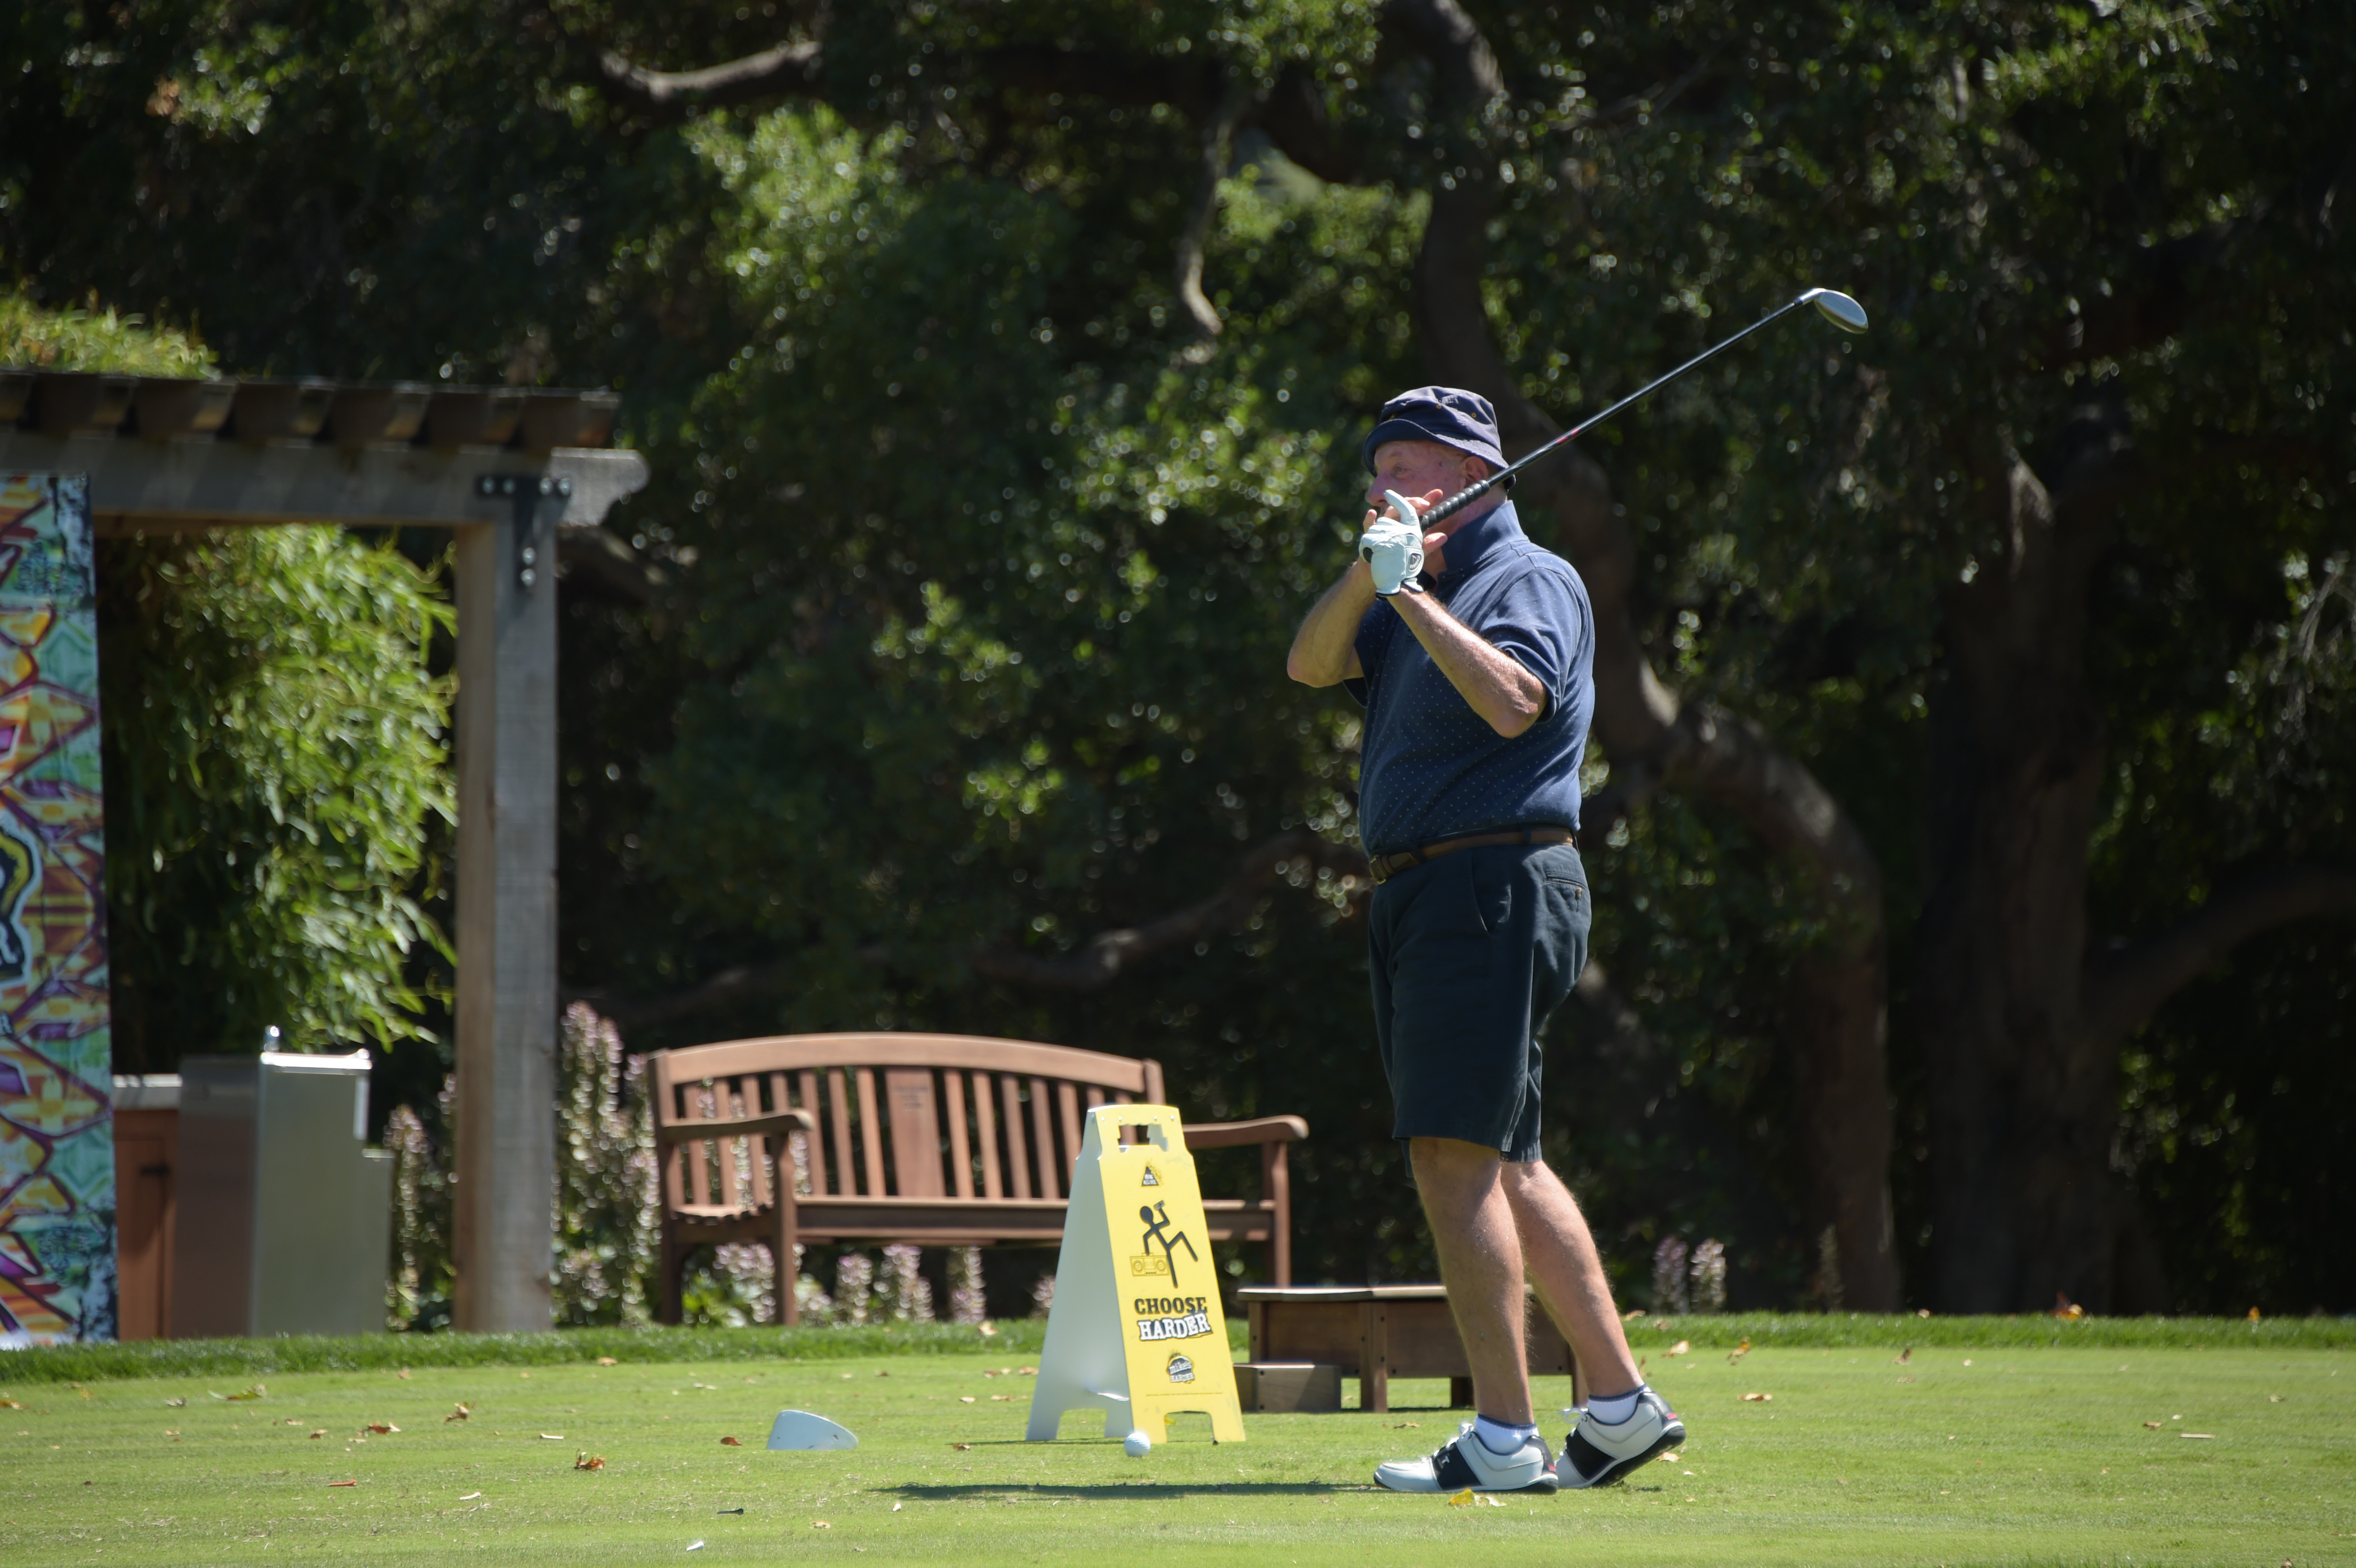 Jonathan Banks attends The Screen Actors Guild Foundation's 6th Annual Los Angeles Golf Classic on June 8, 2015 in Burbank, California. (Photo by Jason Kempin/Getty Images for The Screen Actors Guild Foundation)